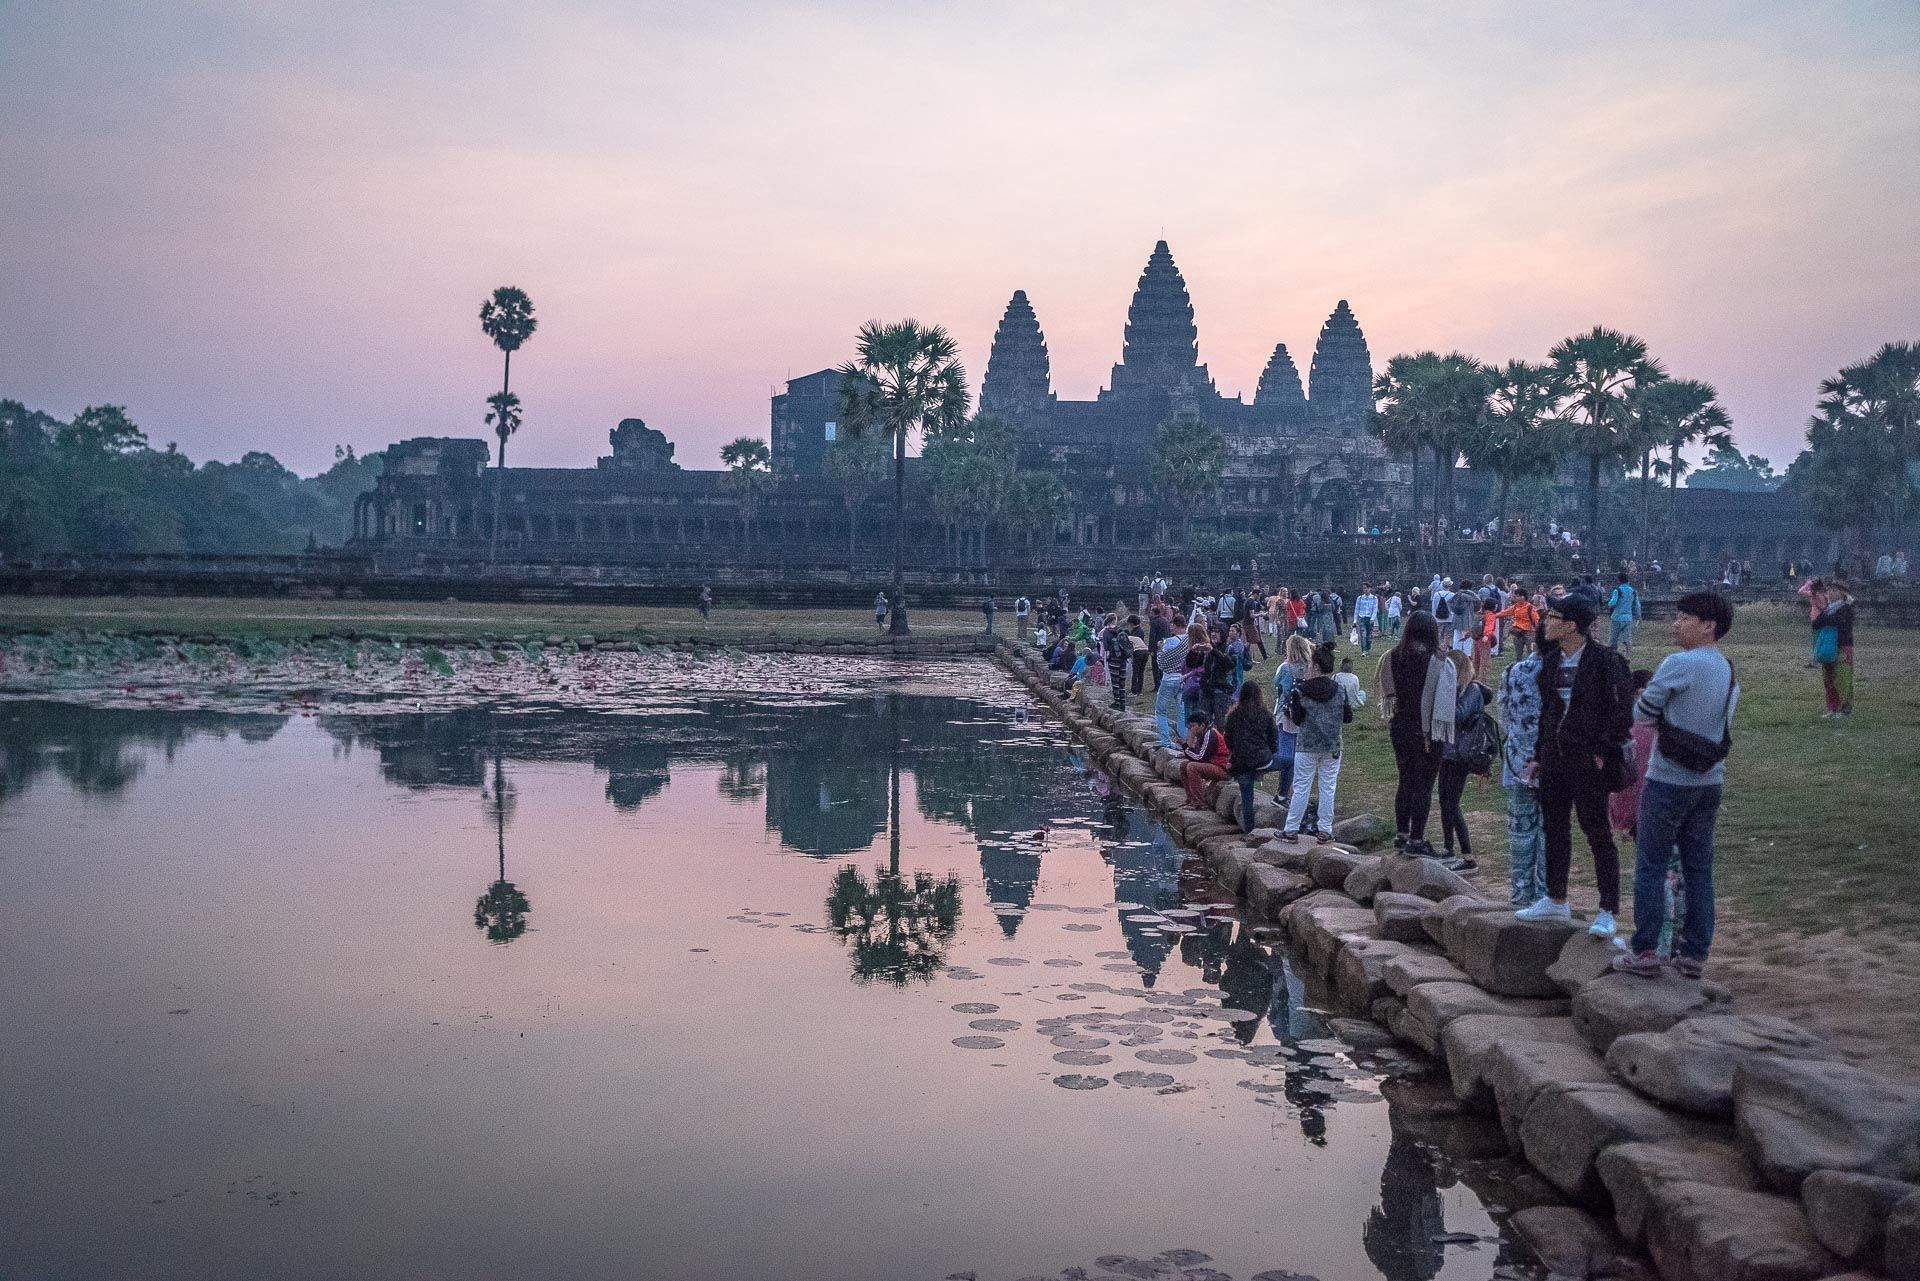 Lesvoyageuses-guide-voyage-Siem-reap-angkor-temples-Cambodge-25